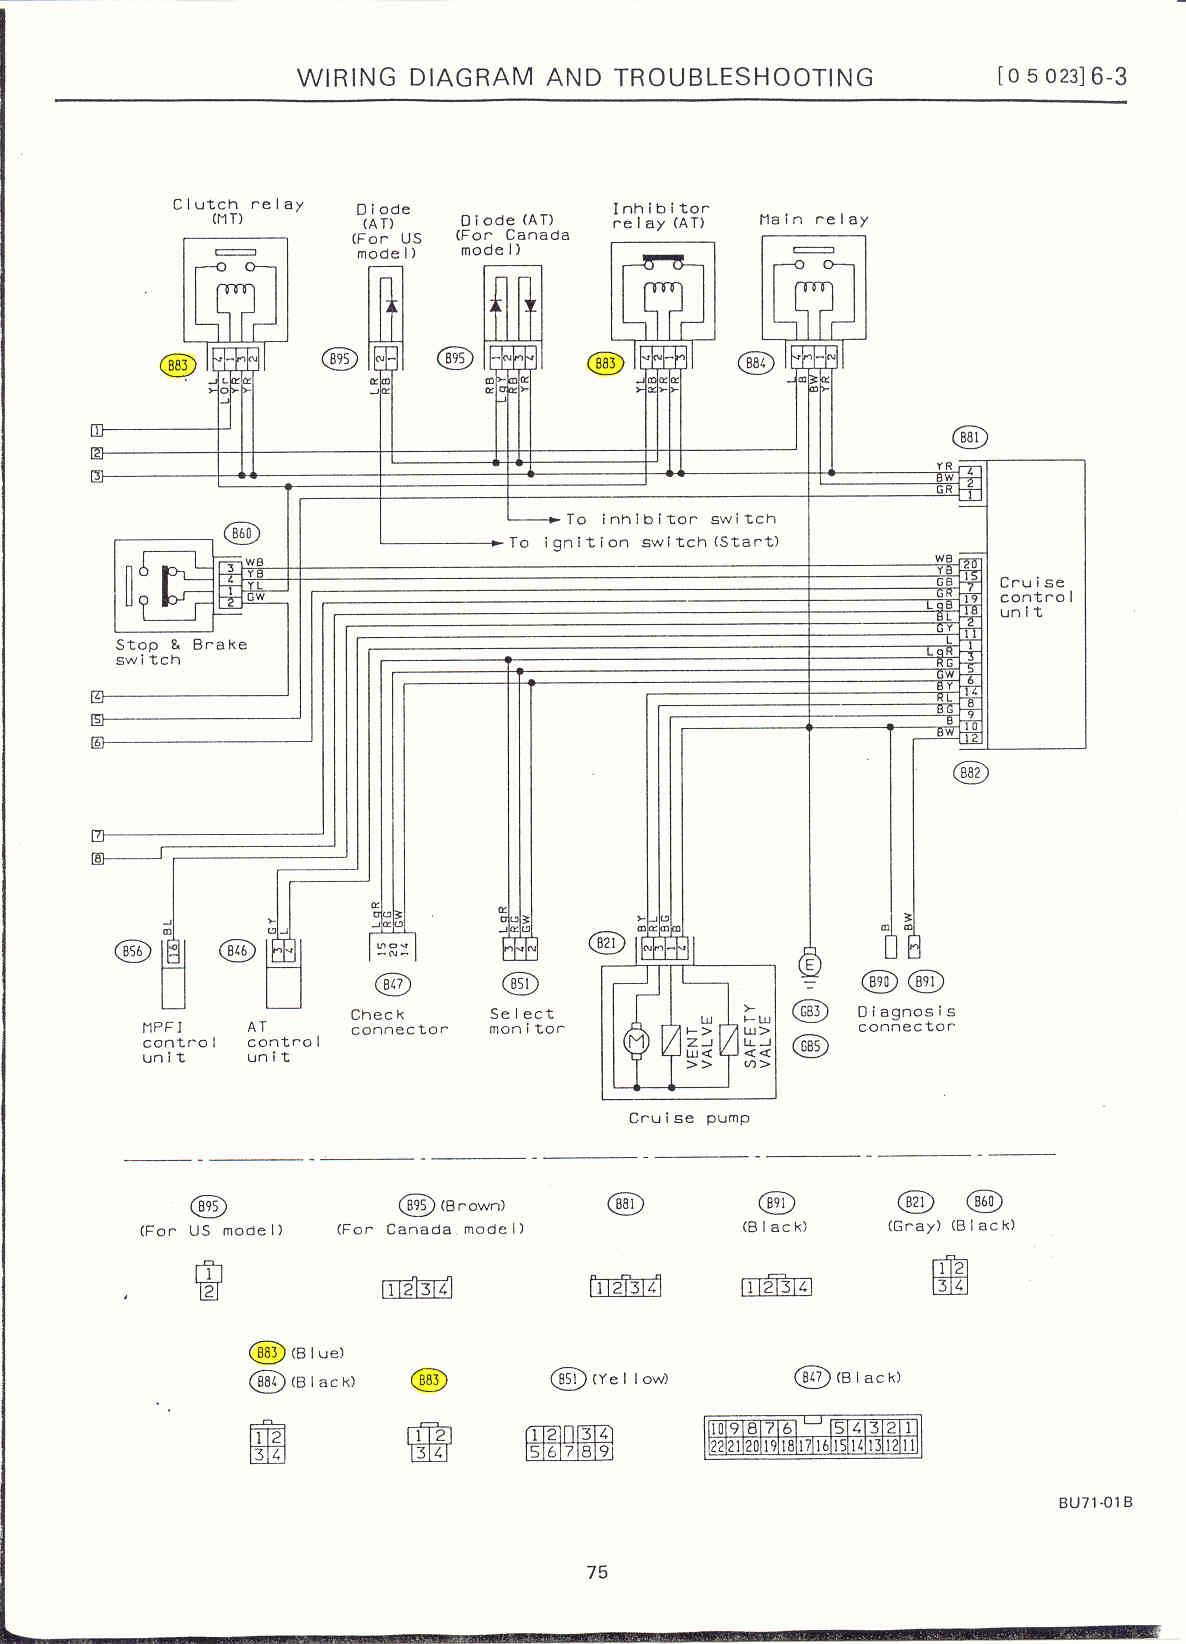 2001 subaru forester stereo wiring diagram central boiler thermostat outback